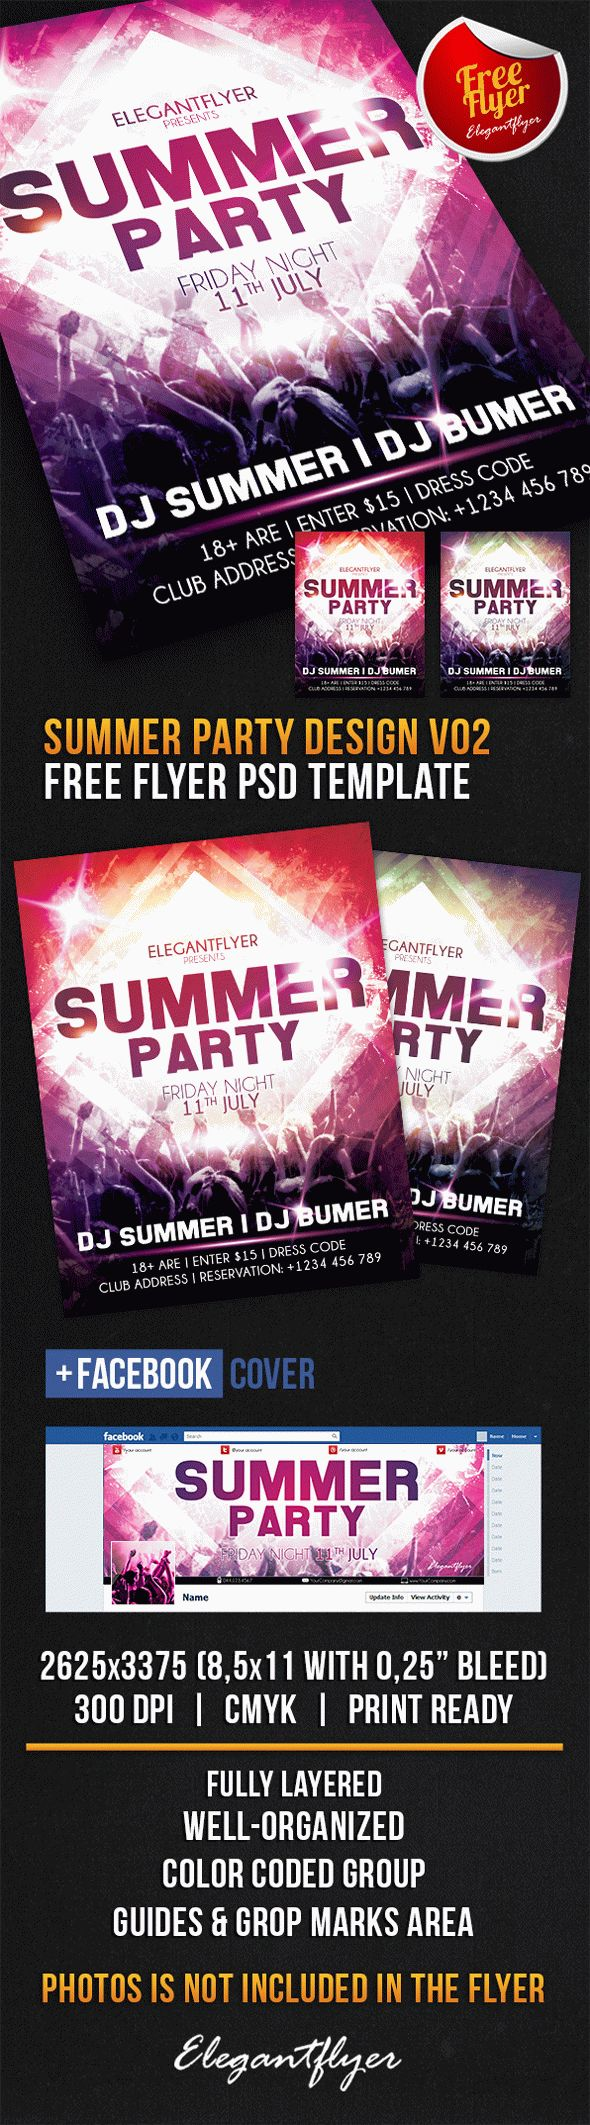 Summer Party Design V02 – Free Flyer PSD Template